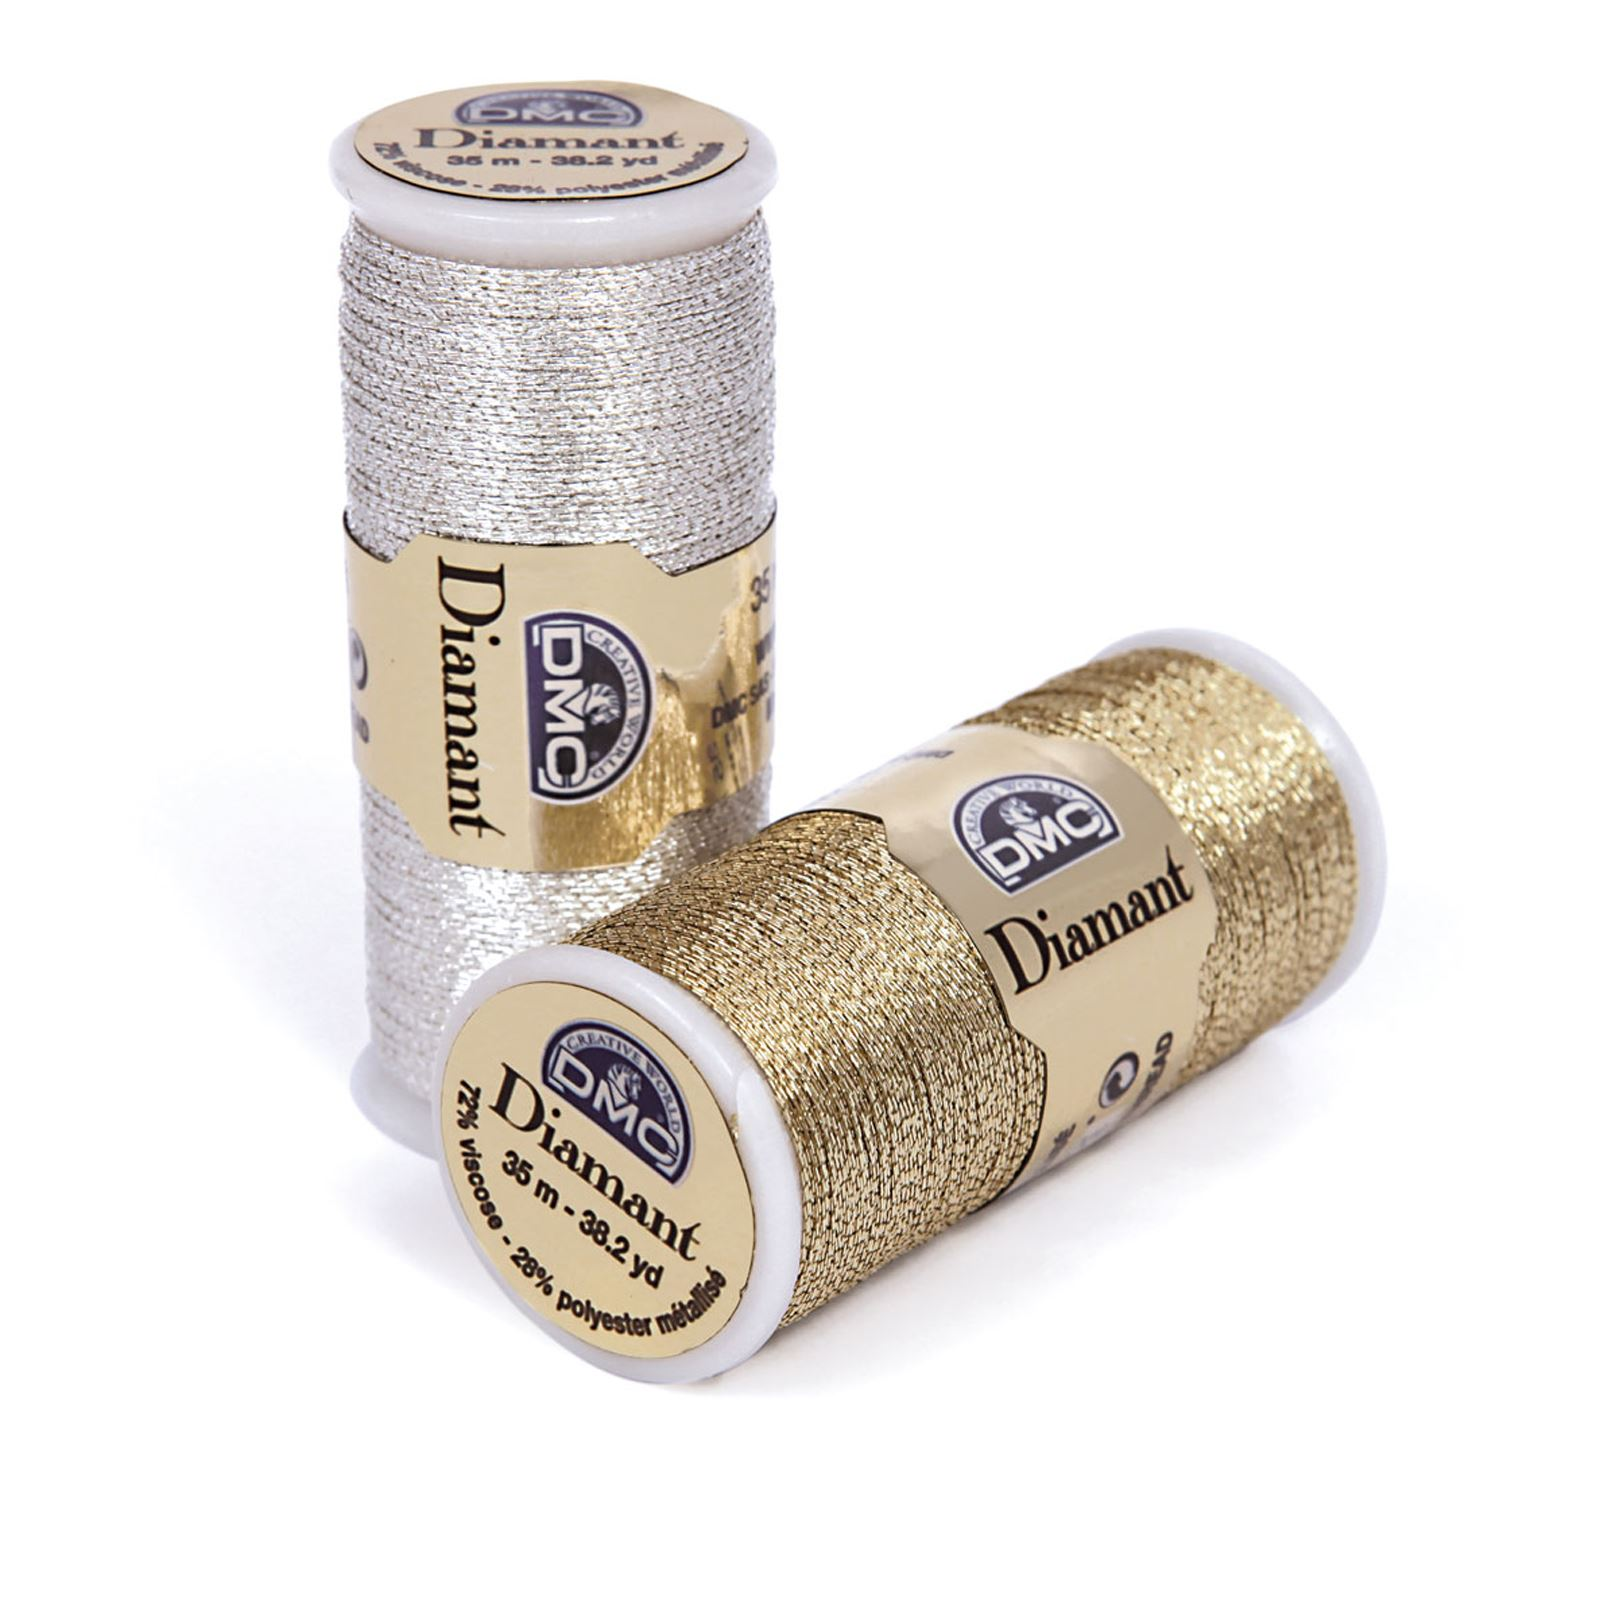 DMC-Diamant-Metallic-Embroidery-Thread-35m-Spool-Cross-Stitch thumbnail 23